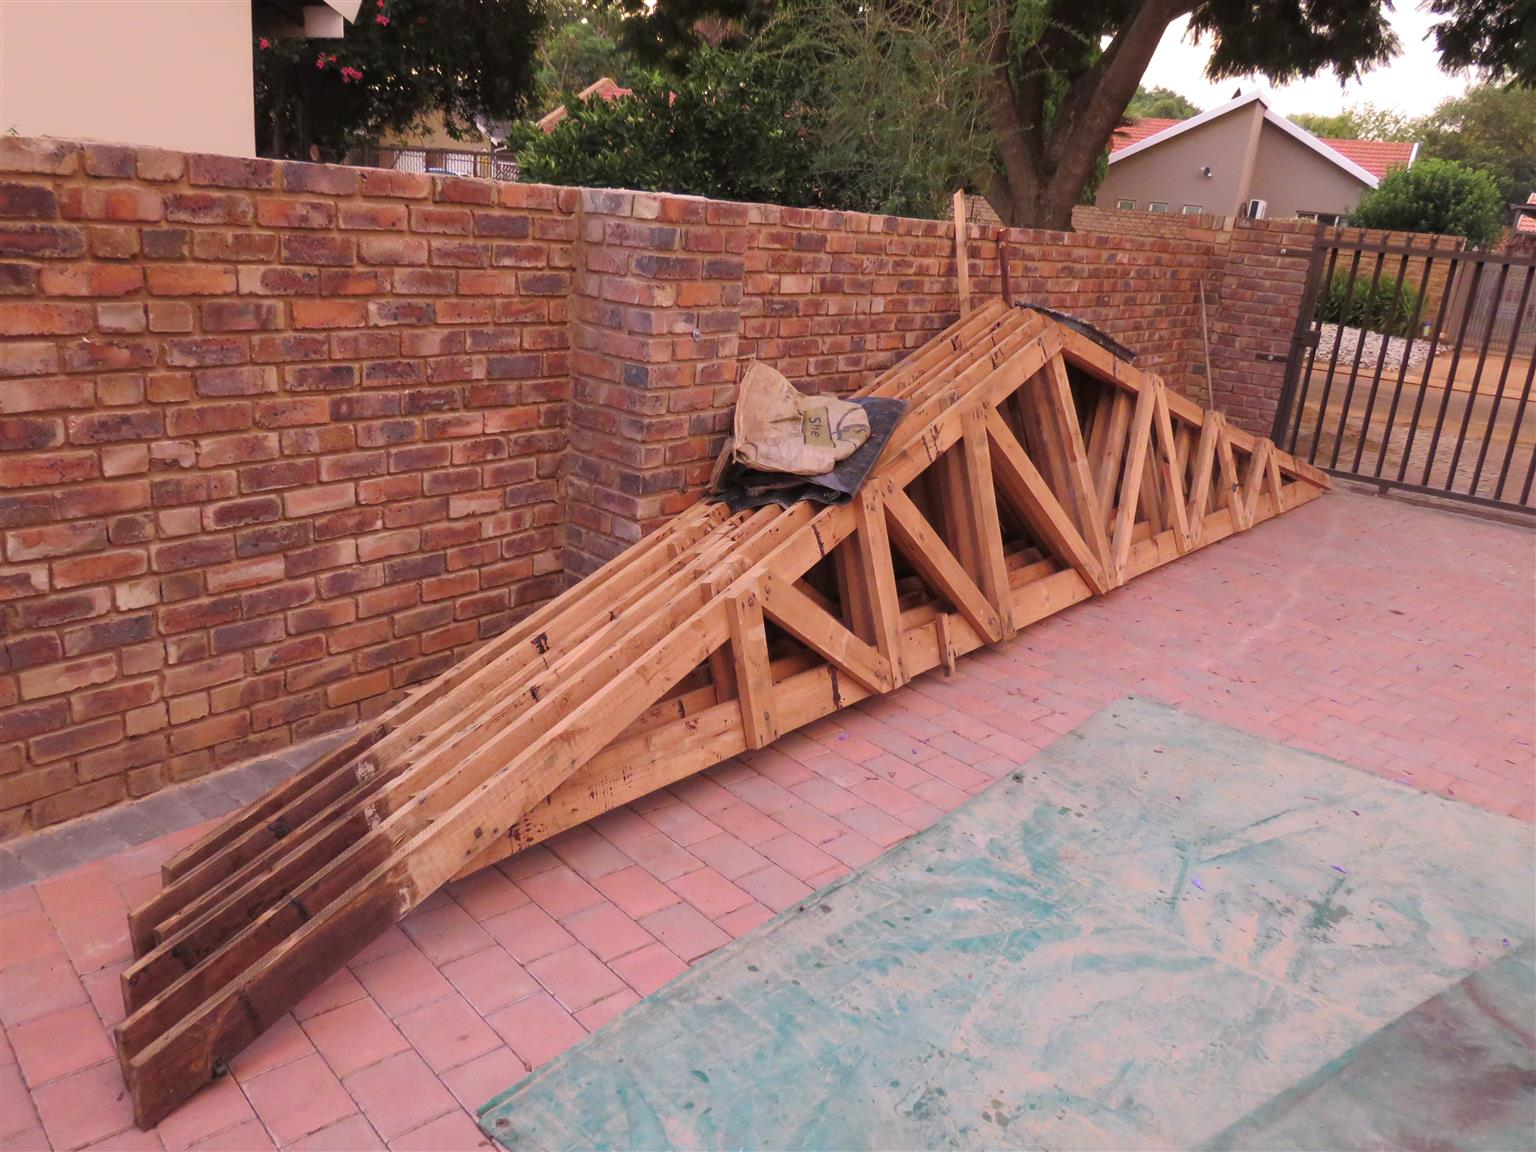 2nd hand roof trusses sale, 8 meter wall to wall  11 x